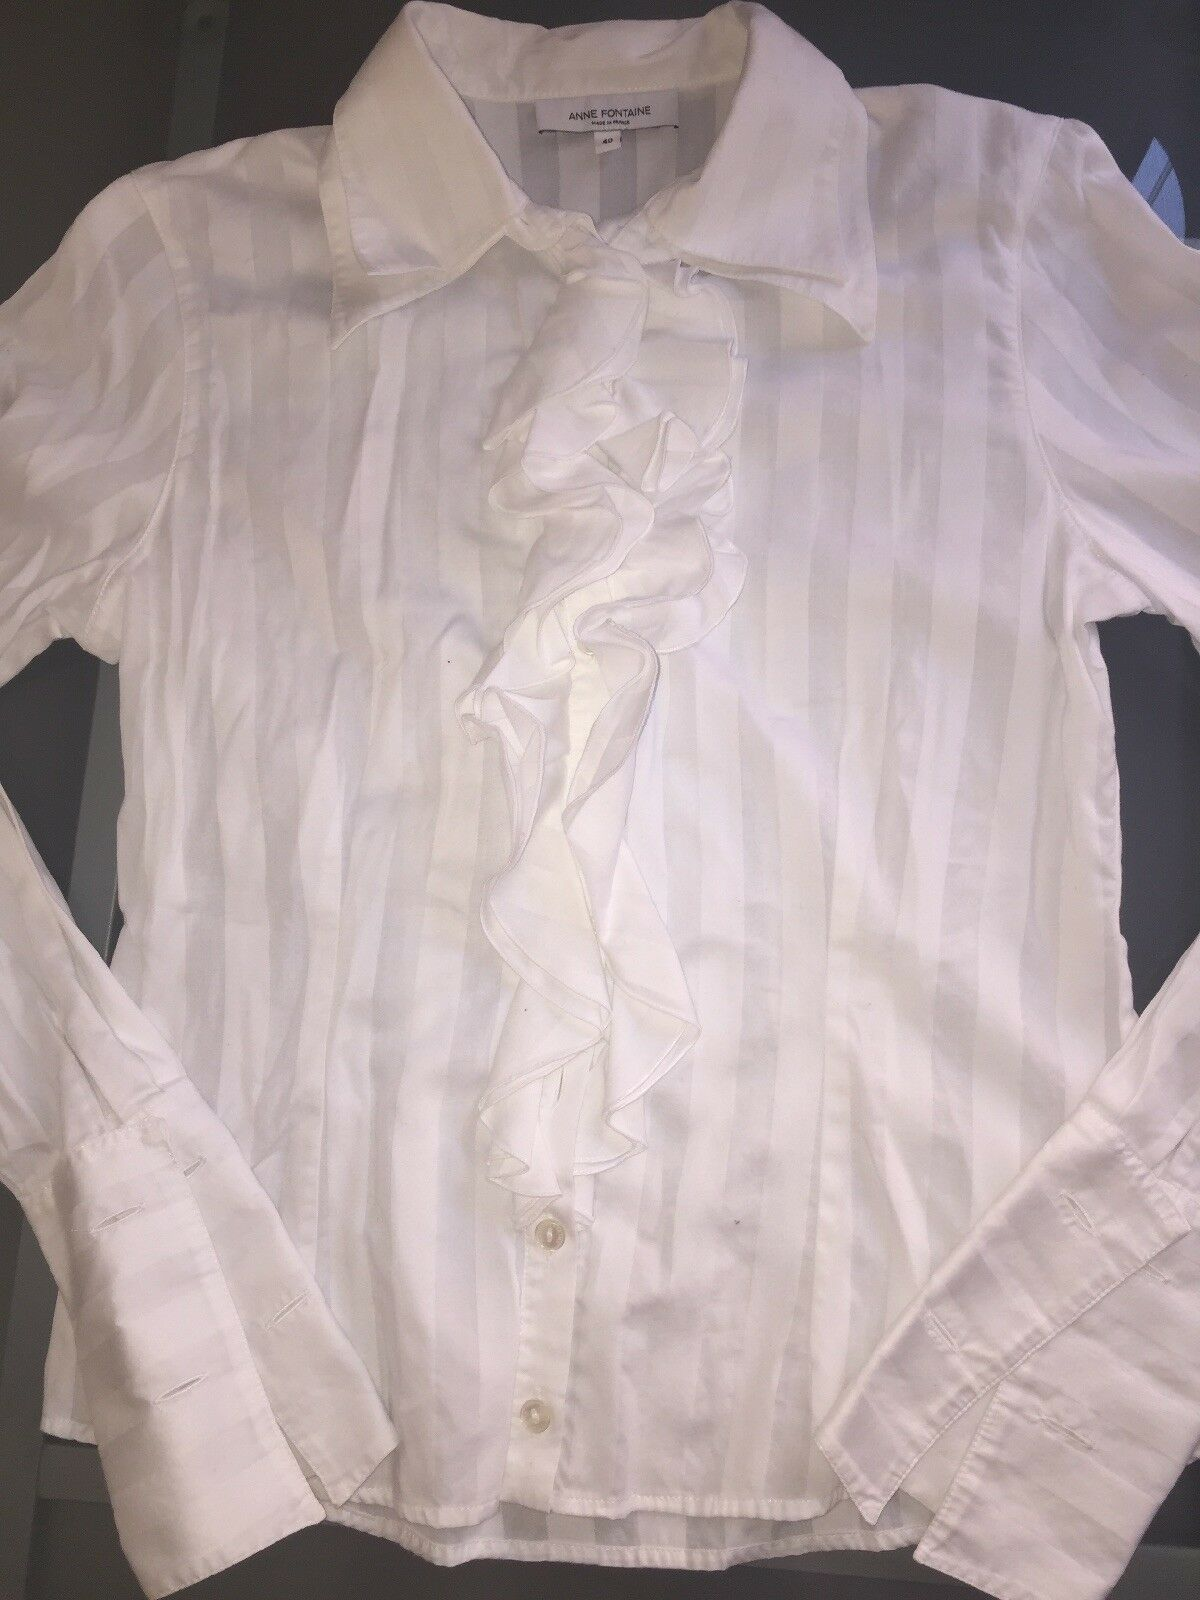 Anne Fontaine White Ruffled Blouse-Sz.40  - image 3